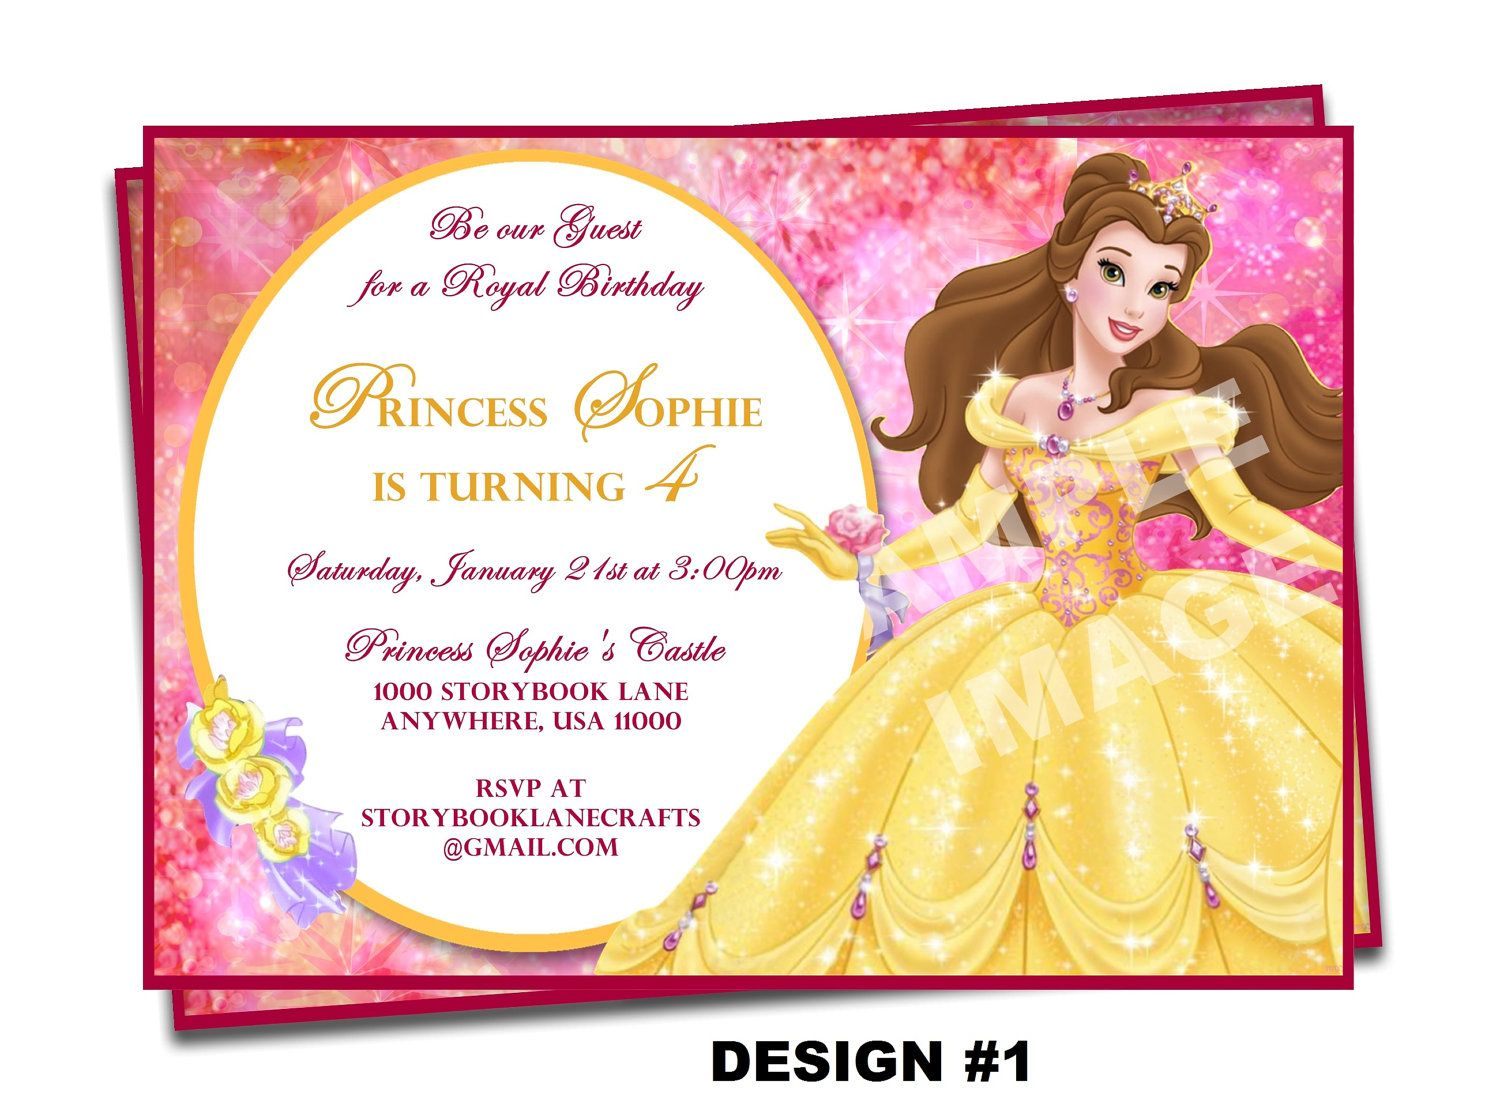 Beauty and the beast invitation belle by storybooklanecrafts 1000 beauty and the beast invitation belle by storybooklanecrafts 1000 filmwisefo Images